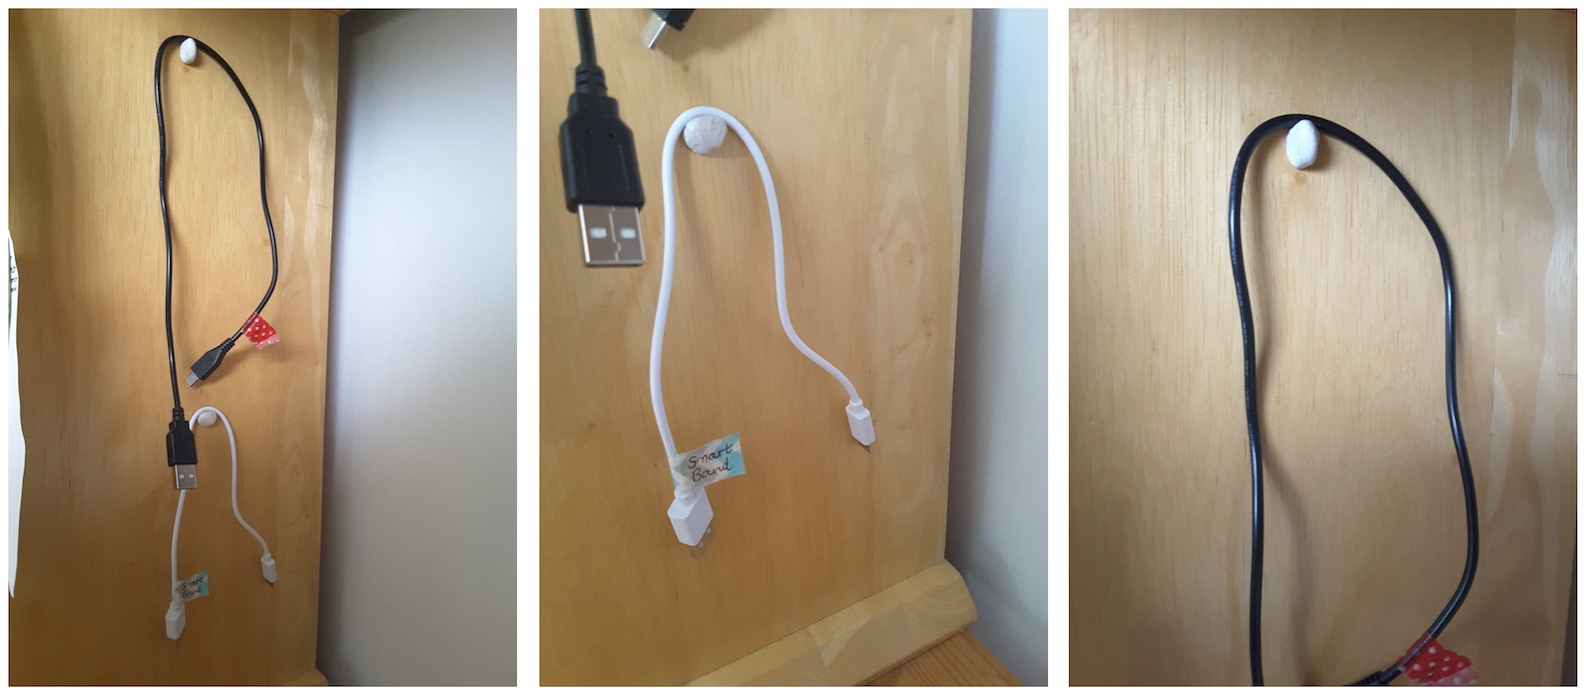 Various cables hanging on blu tack hooks